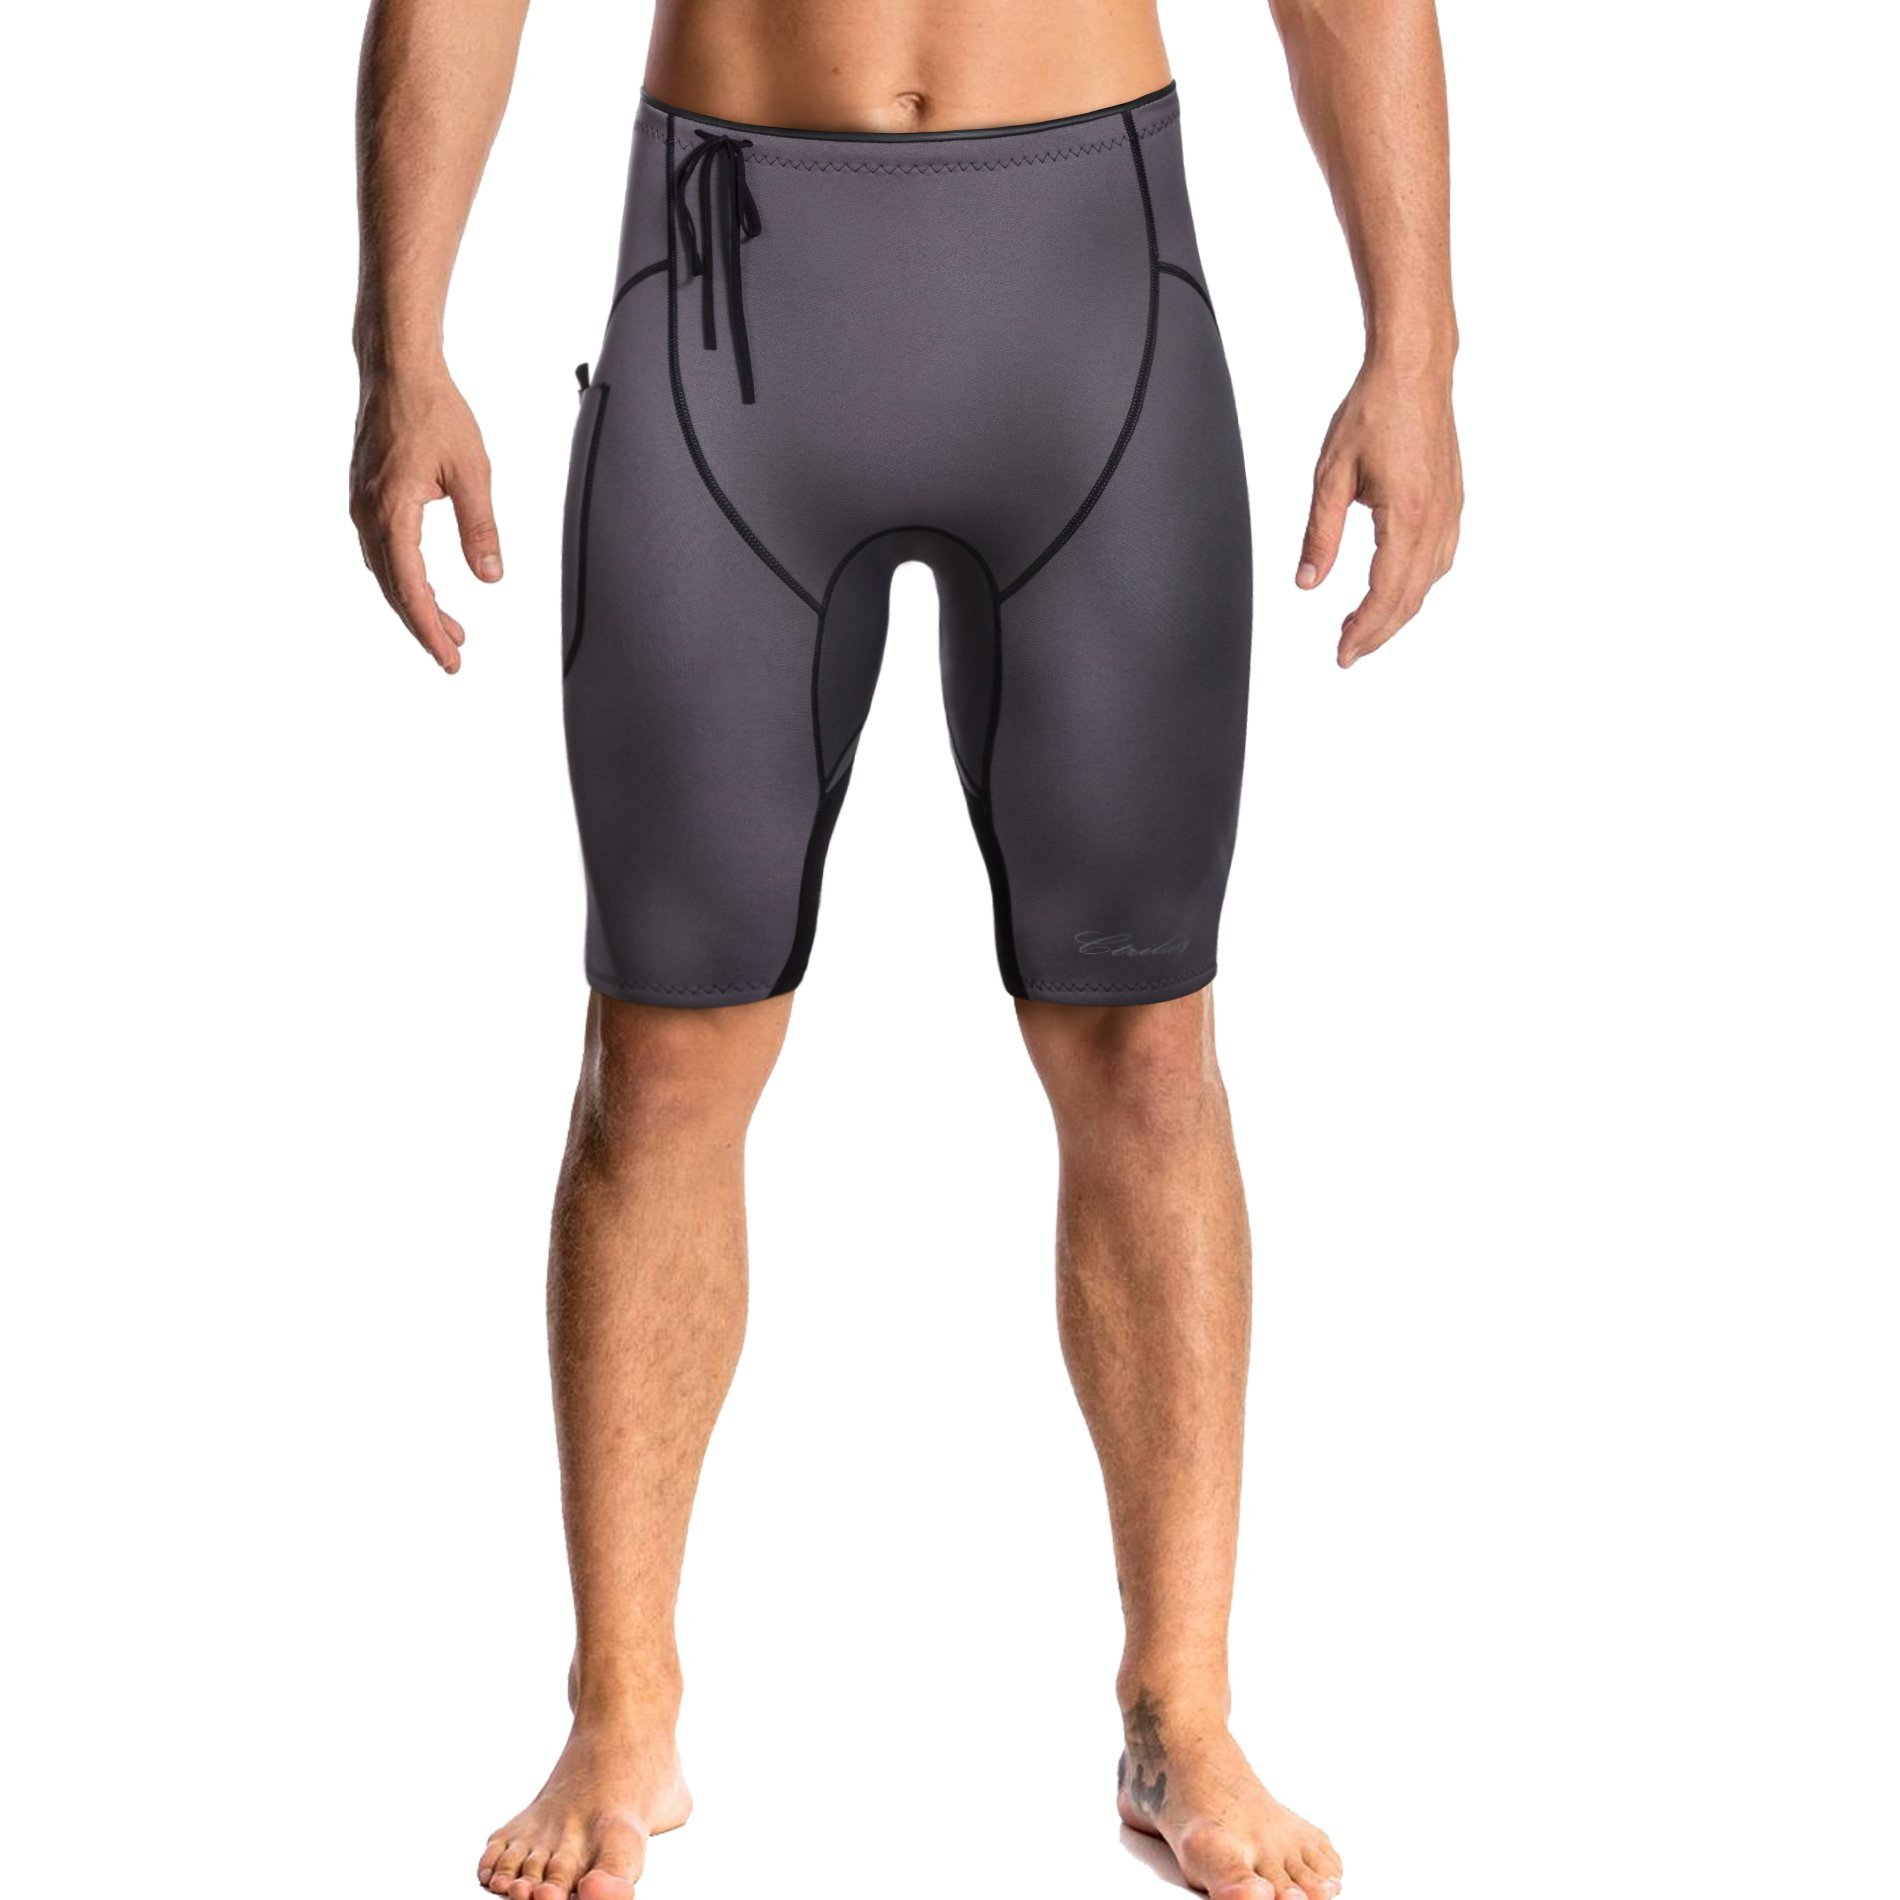 CtriLady Neoprene Wetsuit Short 2mm Premium Sweat Fitness Pants Swim Jammer Buoyancy Shorts with Pocket for Snorkeling Surfing Swimming Training